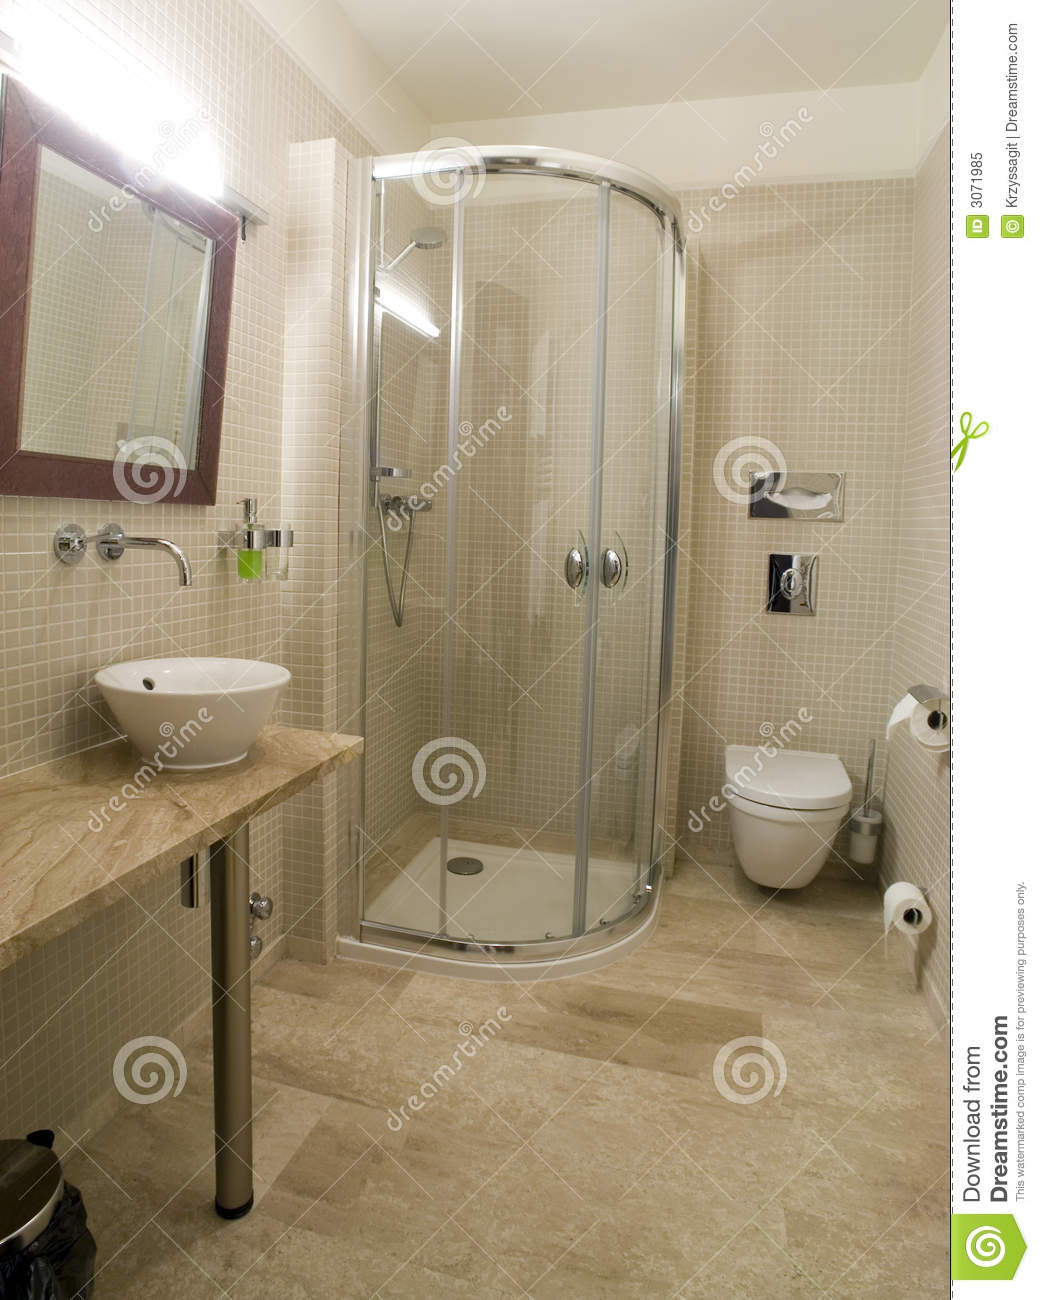 Modern shower and toilet stock image image of for Photo toilette moderne